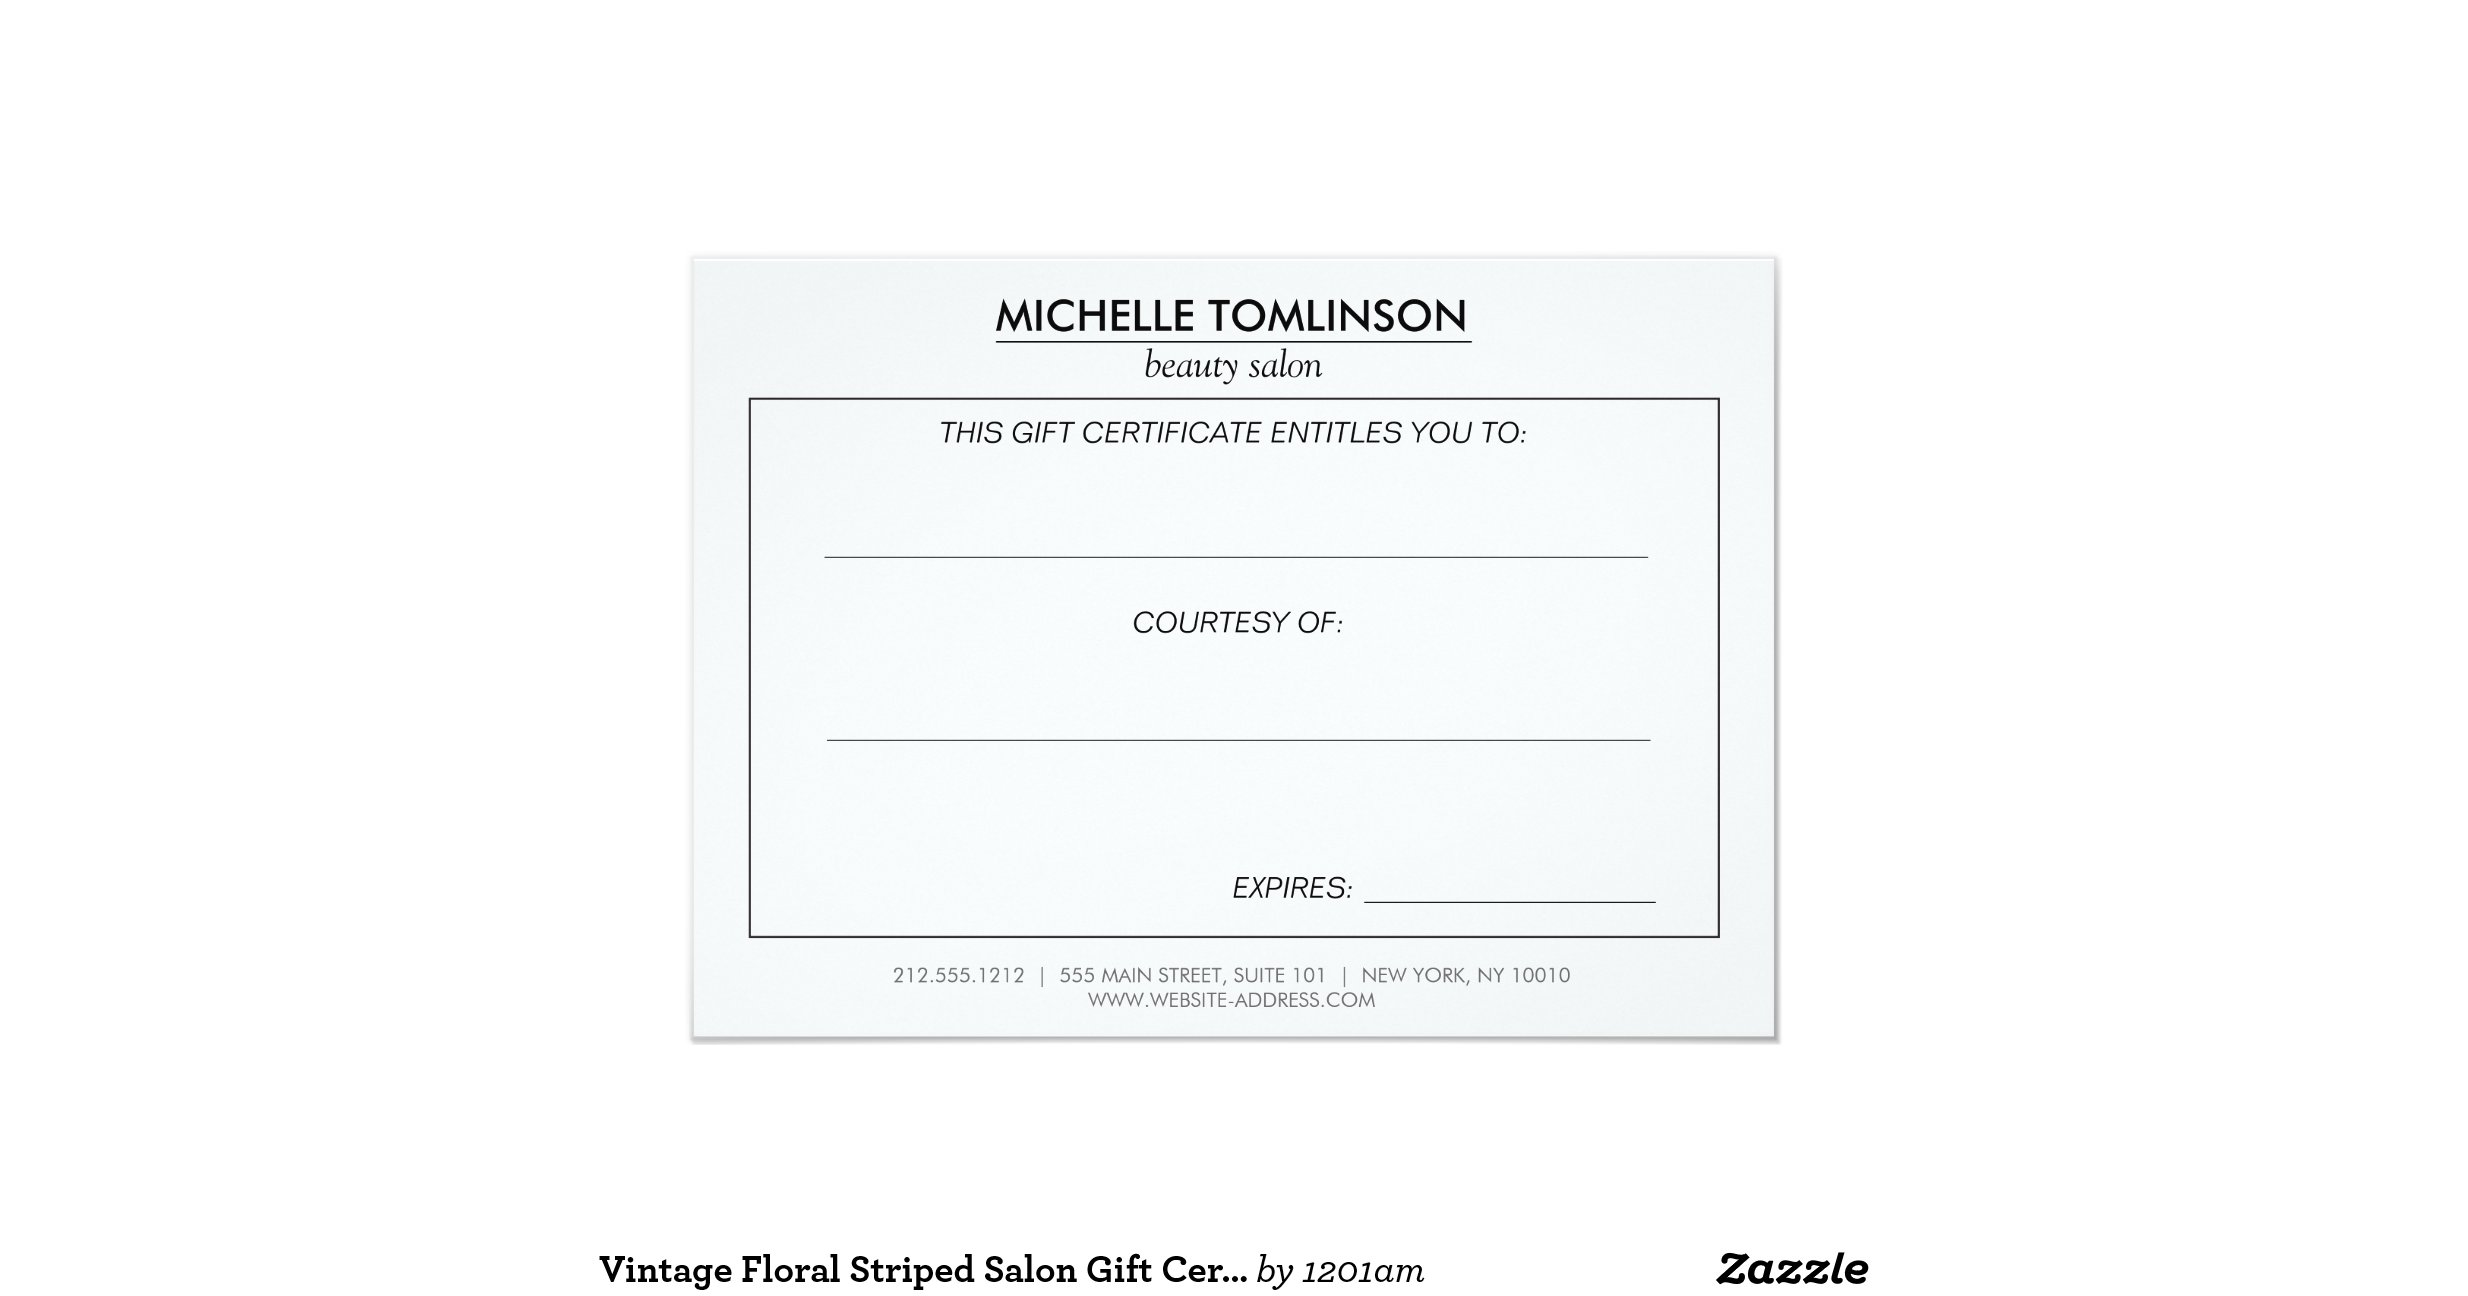 Vintage floral striped salon gift certificate 4 5 x for X salon mulund rate card